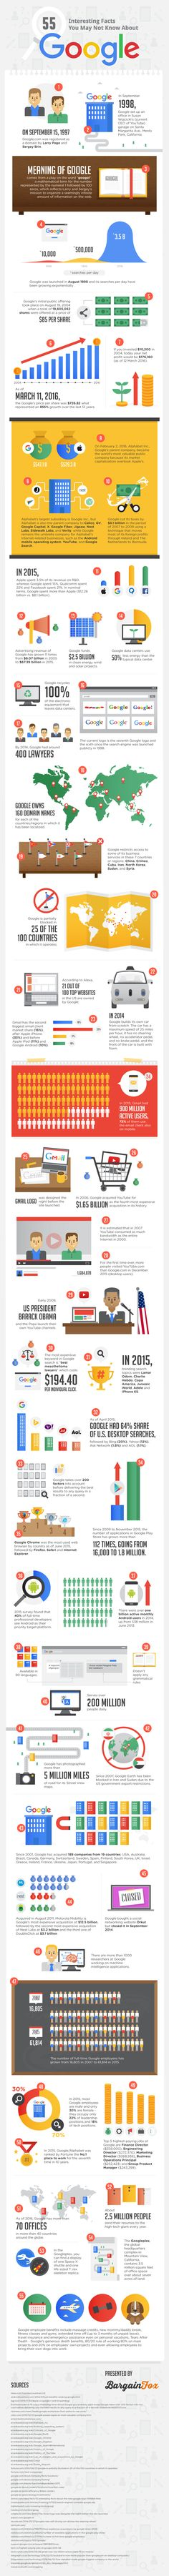 55 interesting facts about Google #INFOGRAPHIC